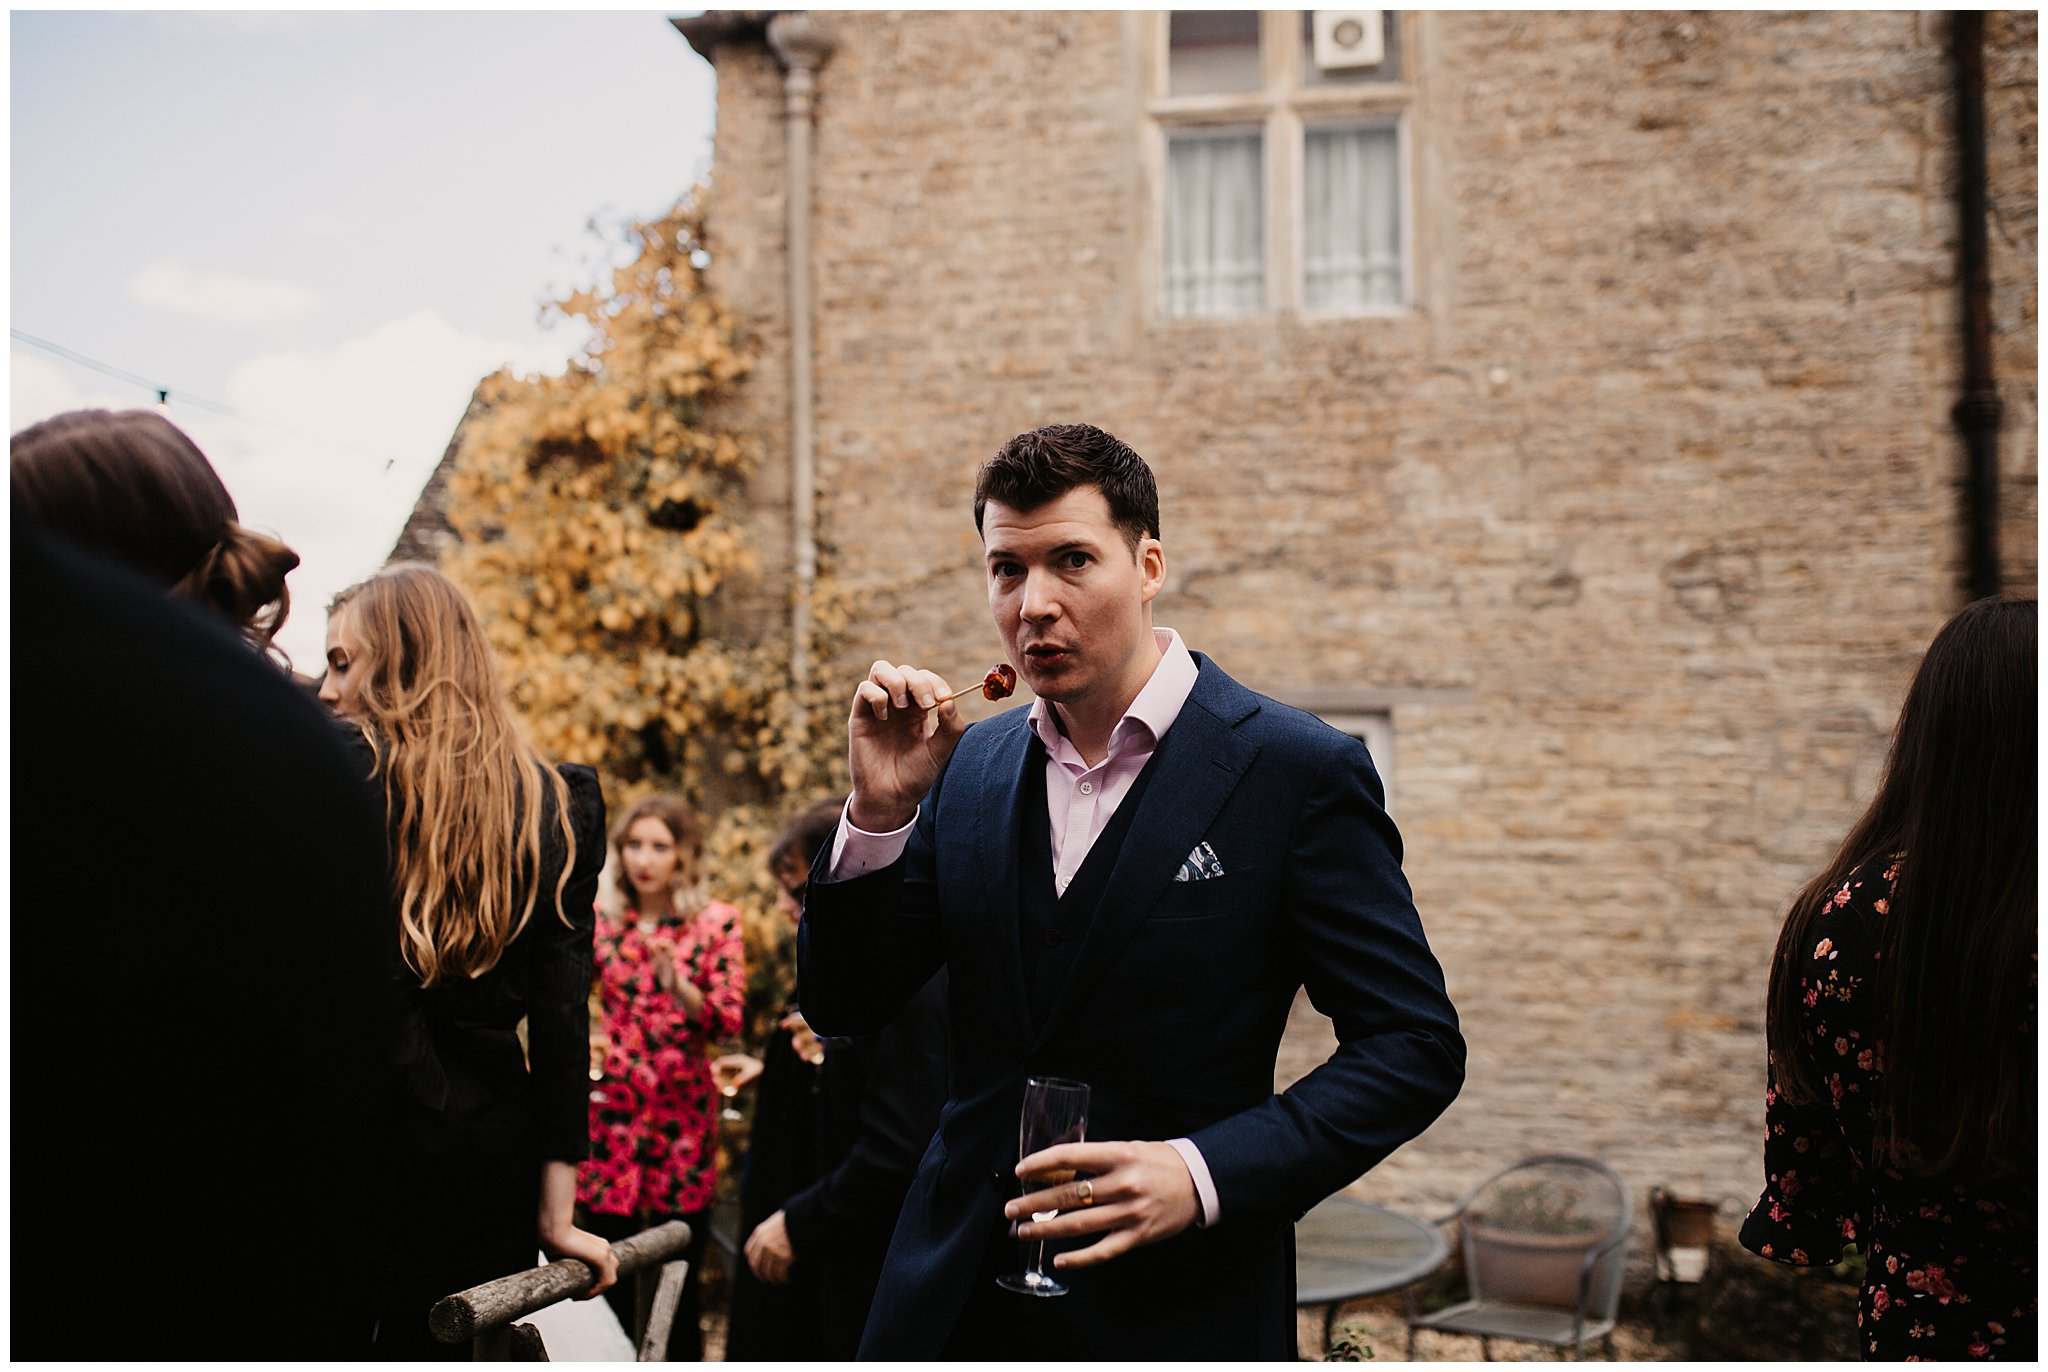 Max & Ksenia Autumnal Wiltshire Wedding-433.jpg